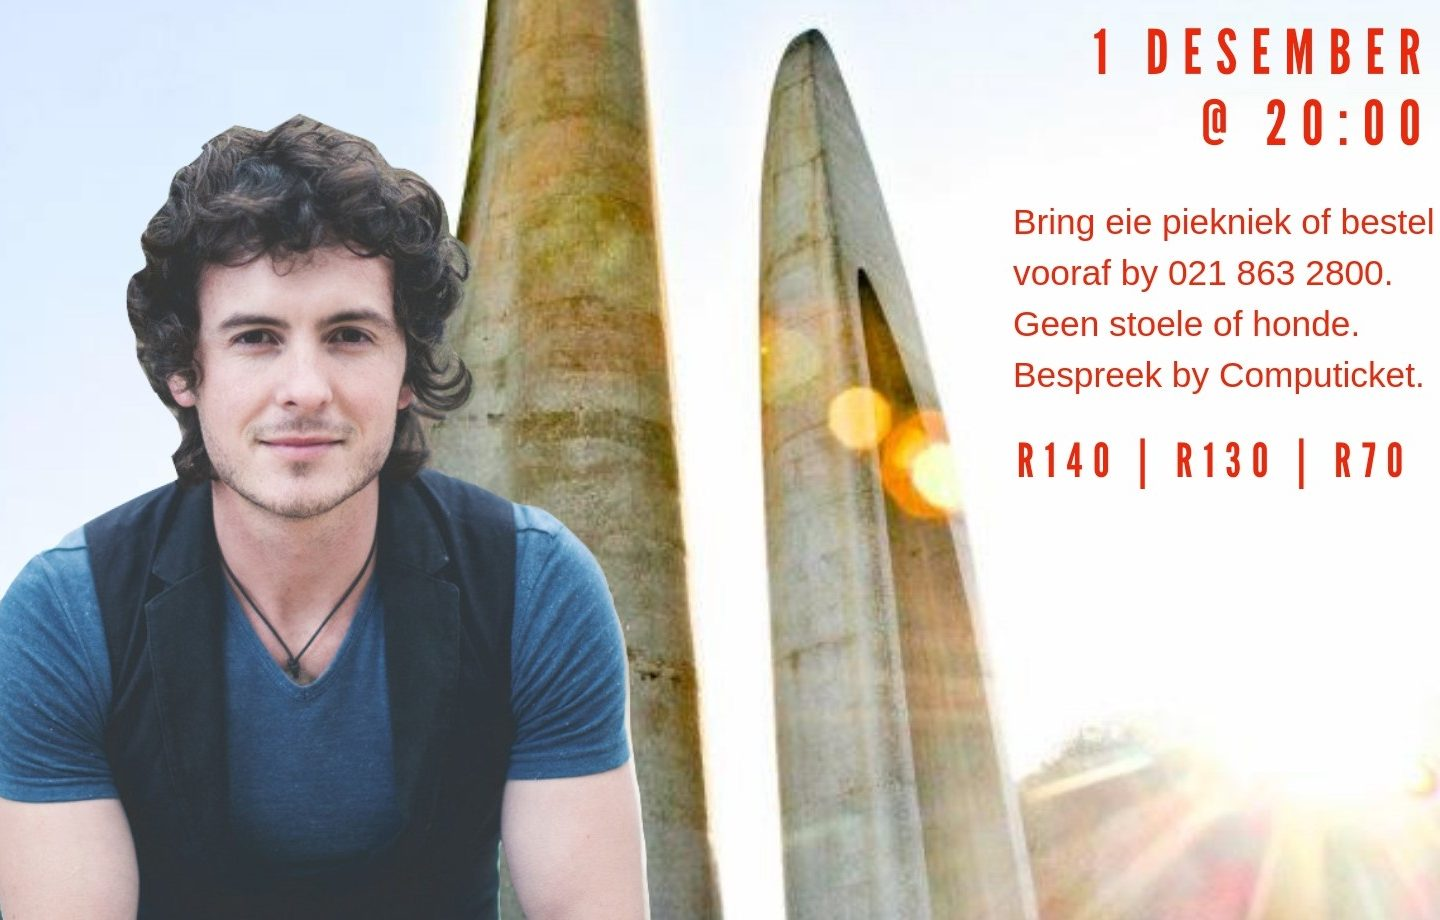 Enter to Win Family Tickets to Joshua na die Reen this December at Die Afrikaanse Taalmonument